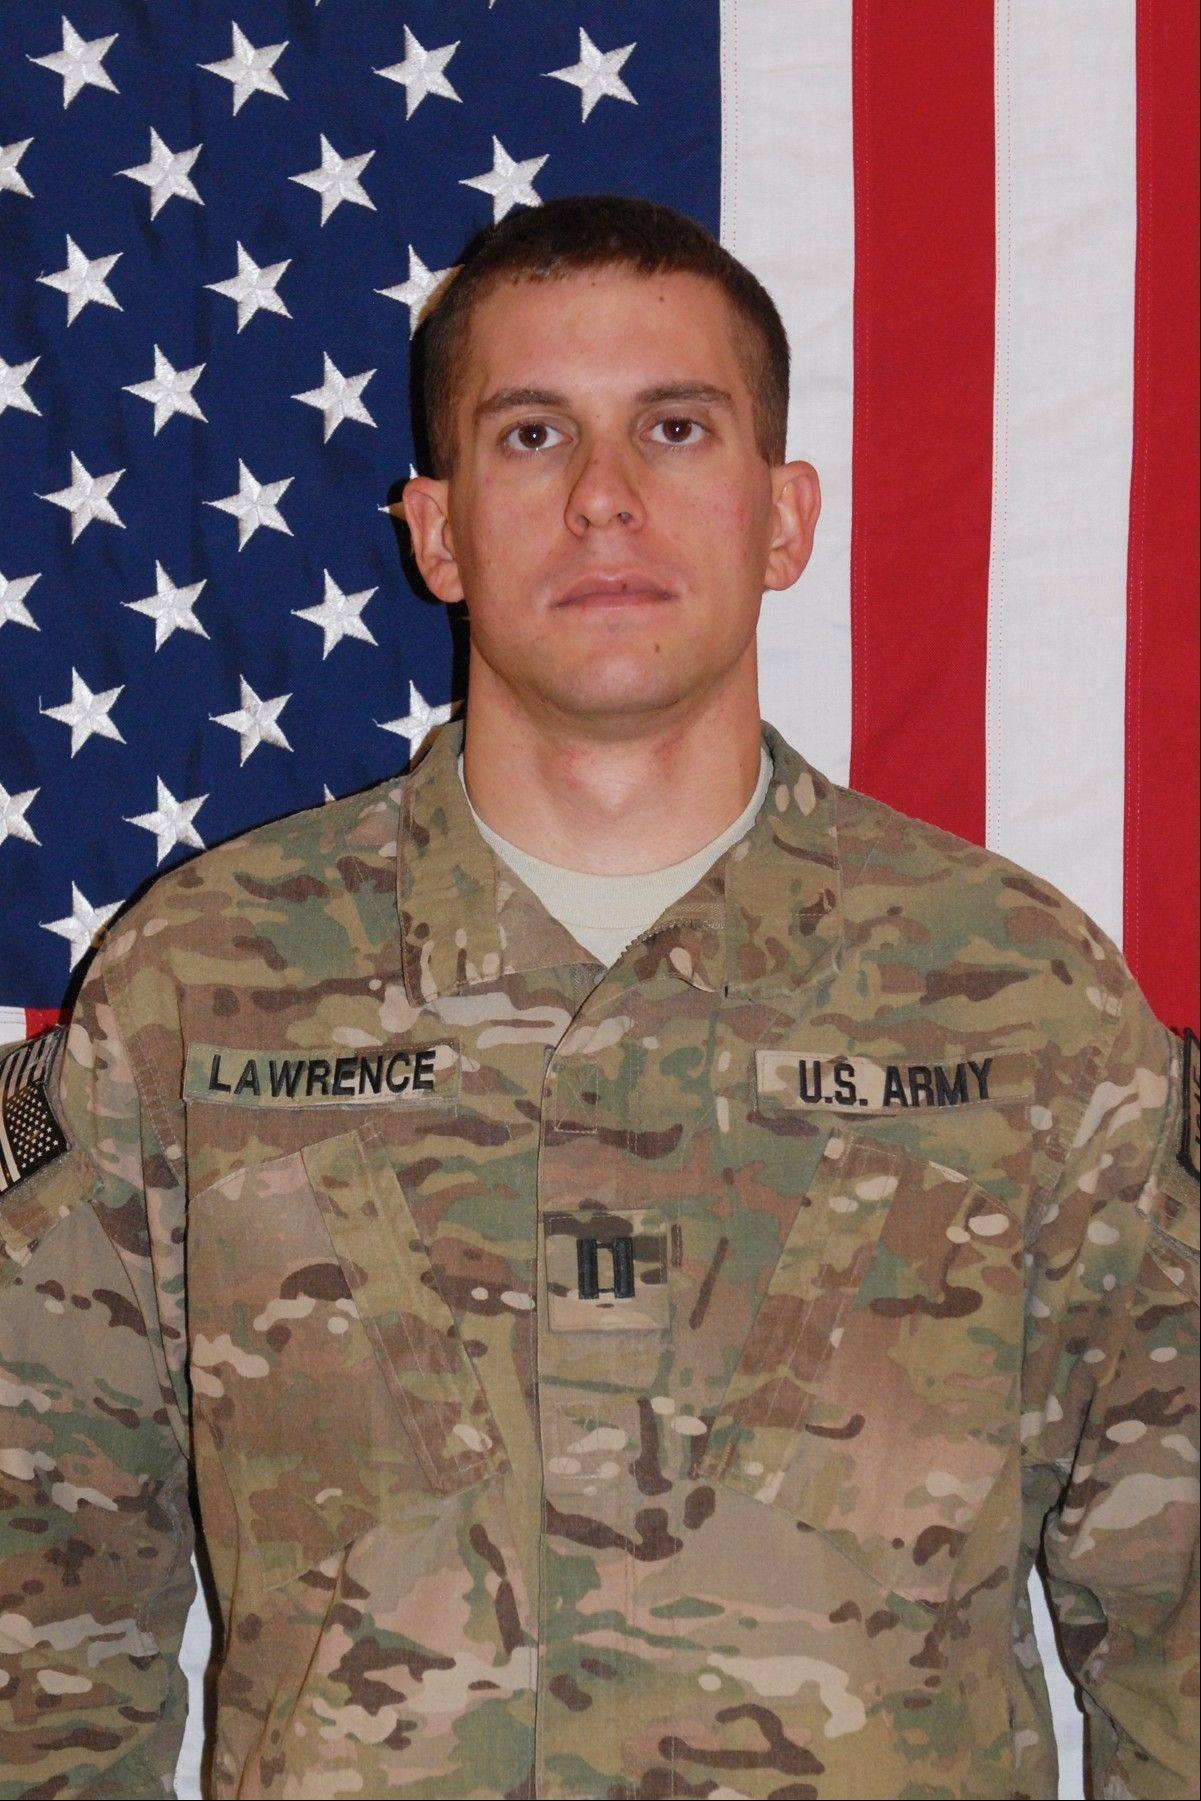 U.S. Army Capt. Joshua Lawrence was killed in October 2011 in Afghanistan.